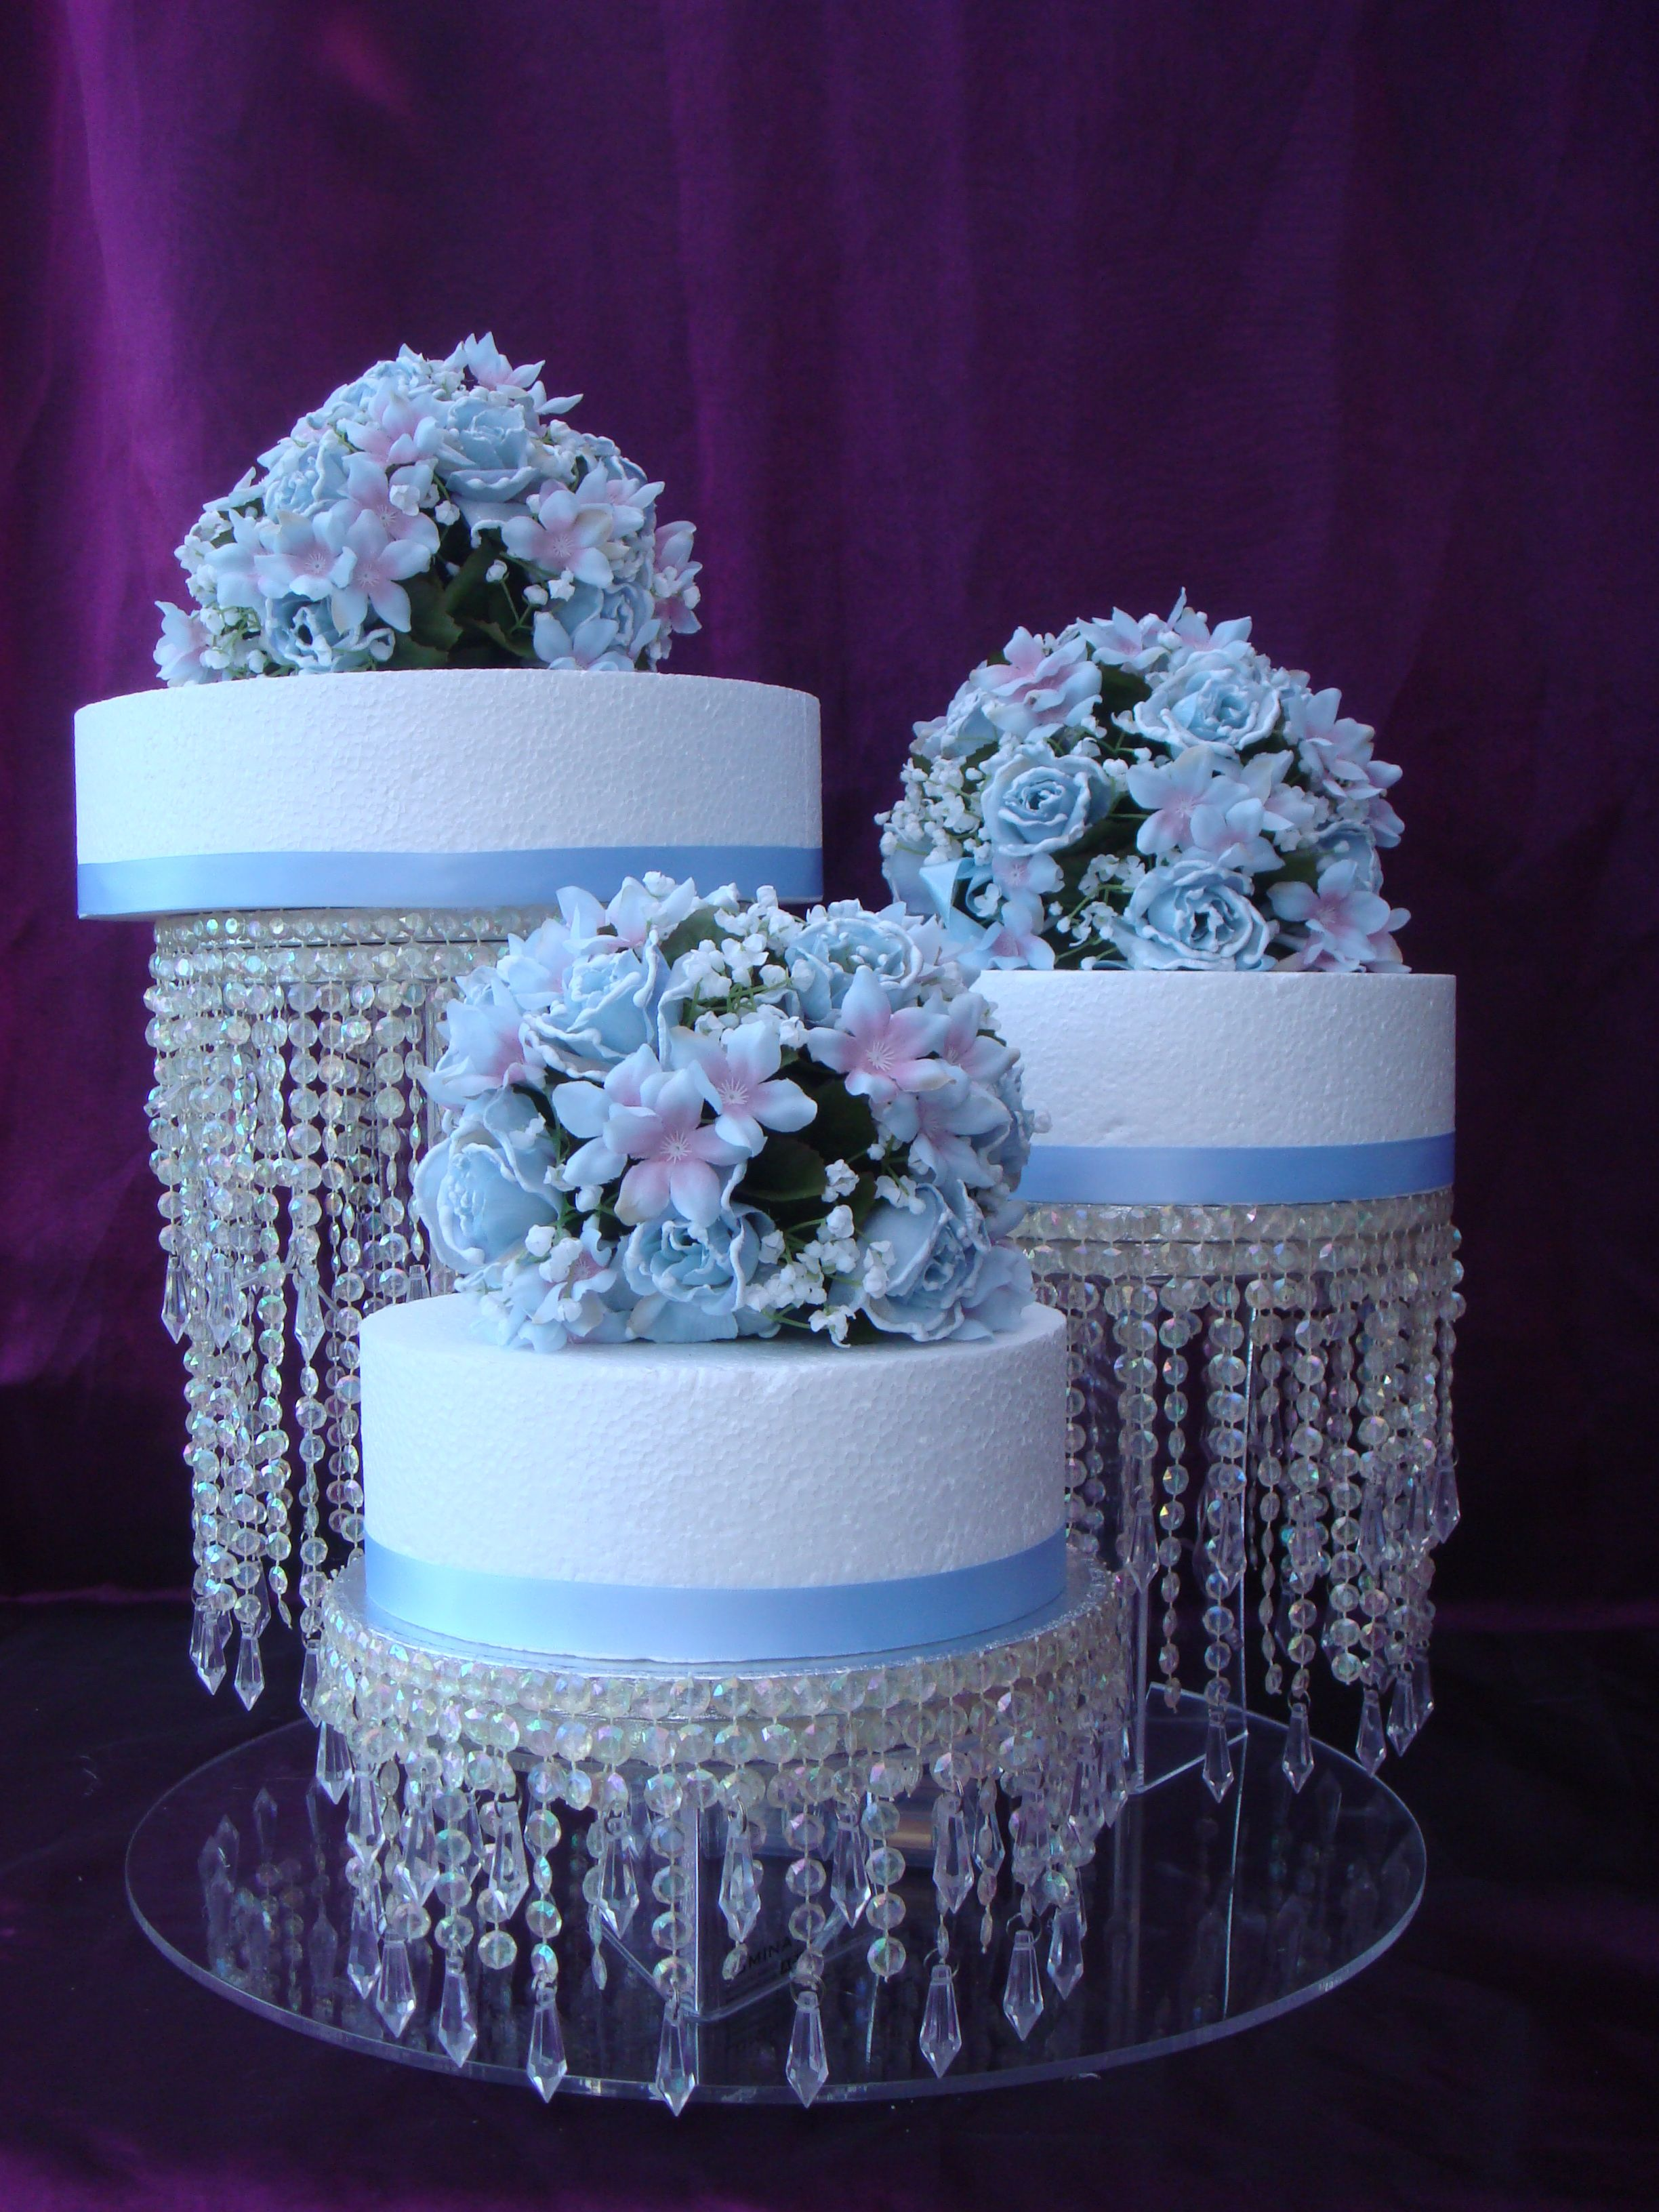 Hand Made Crystal Decorated Cake Boards Cakes Pinterest Cake - Wedding Cake Boards